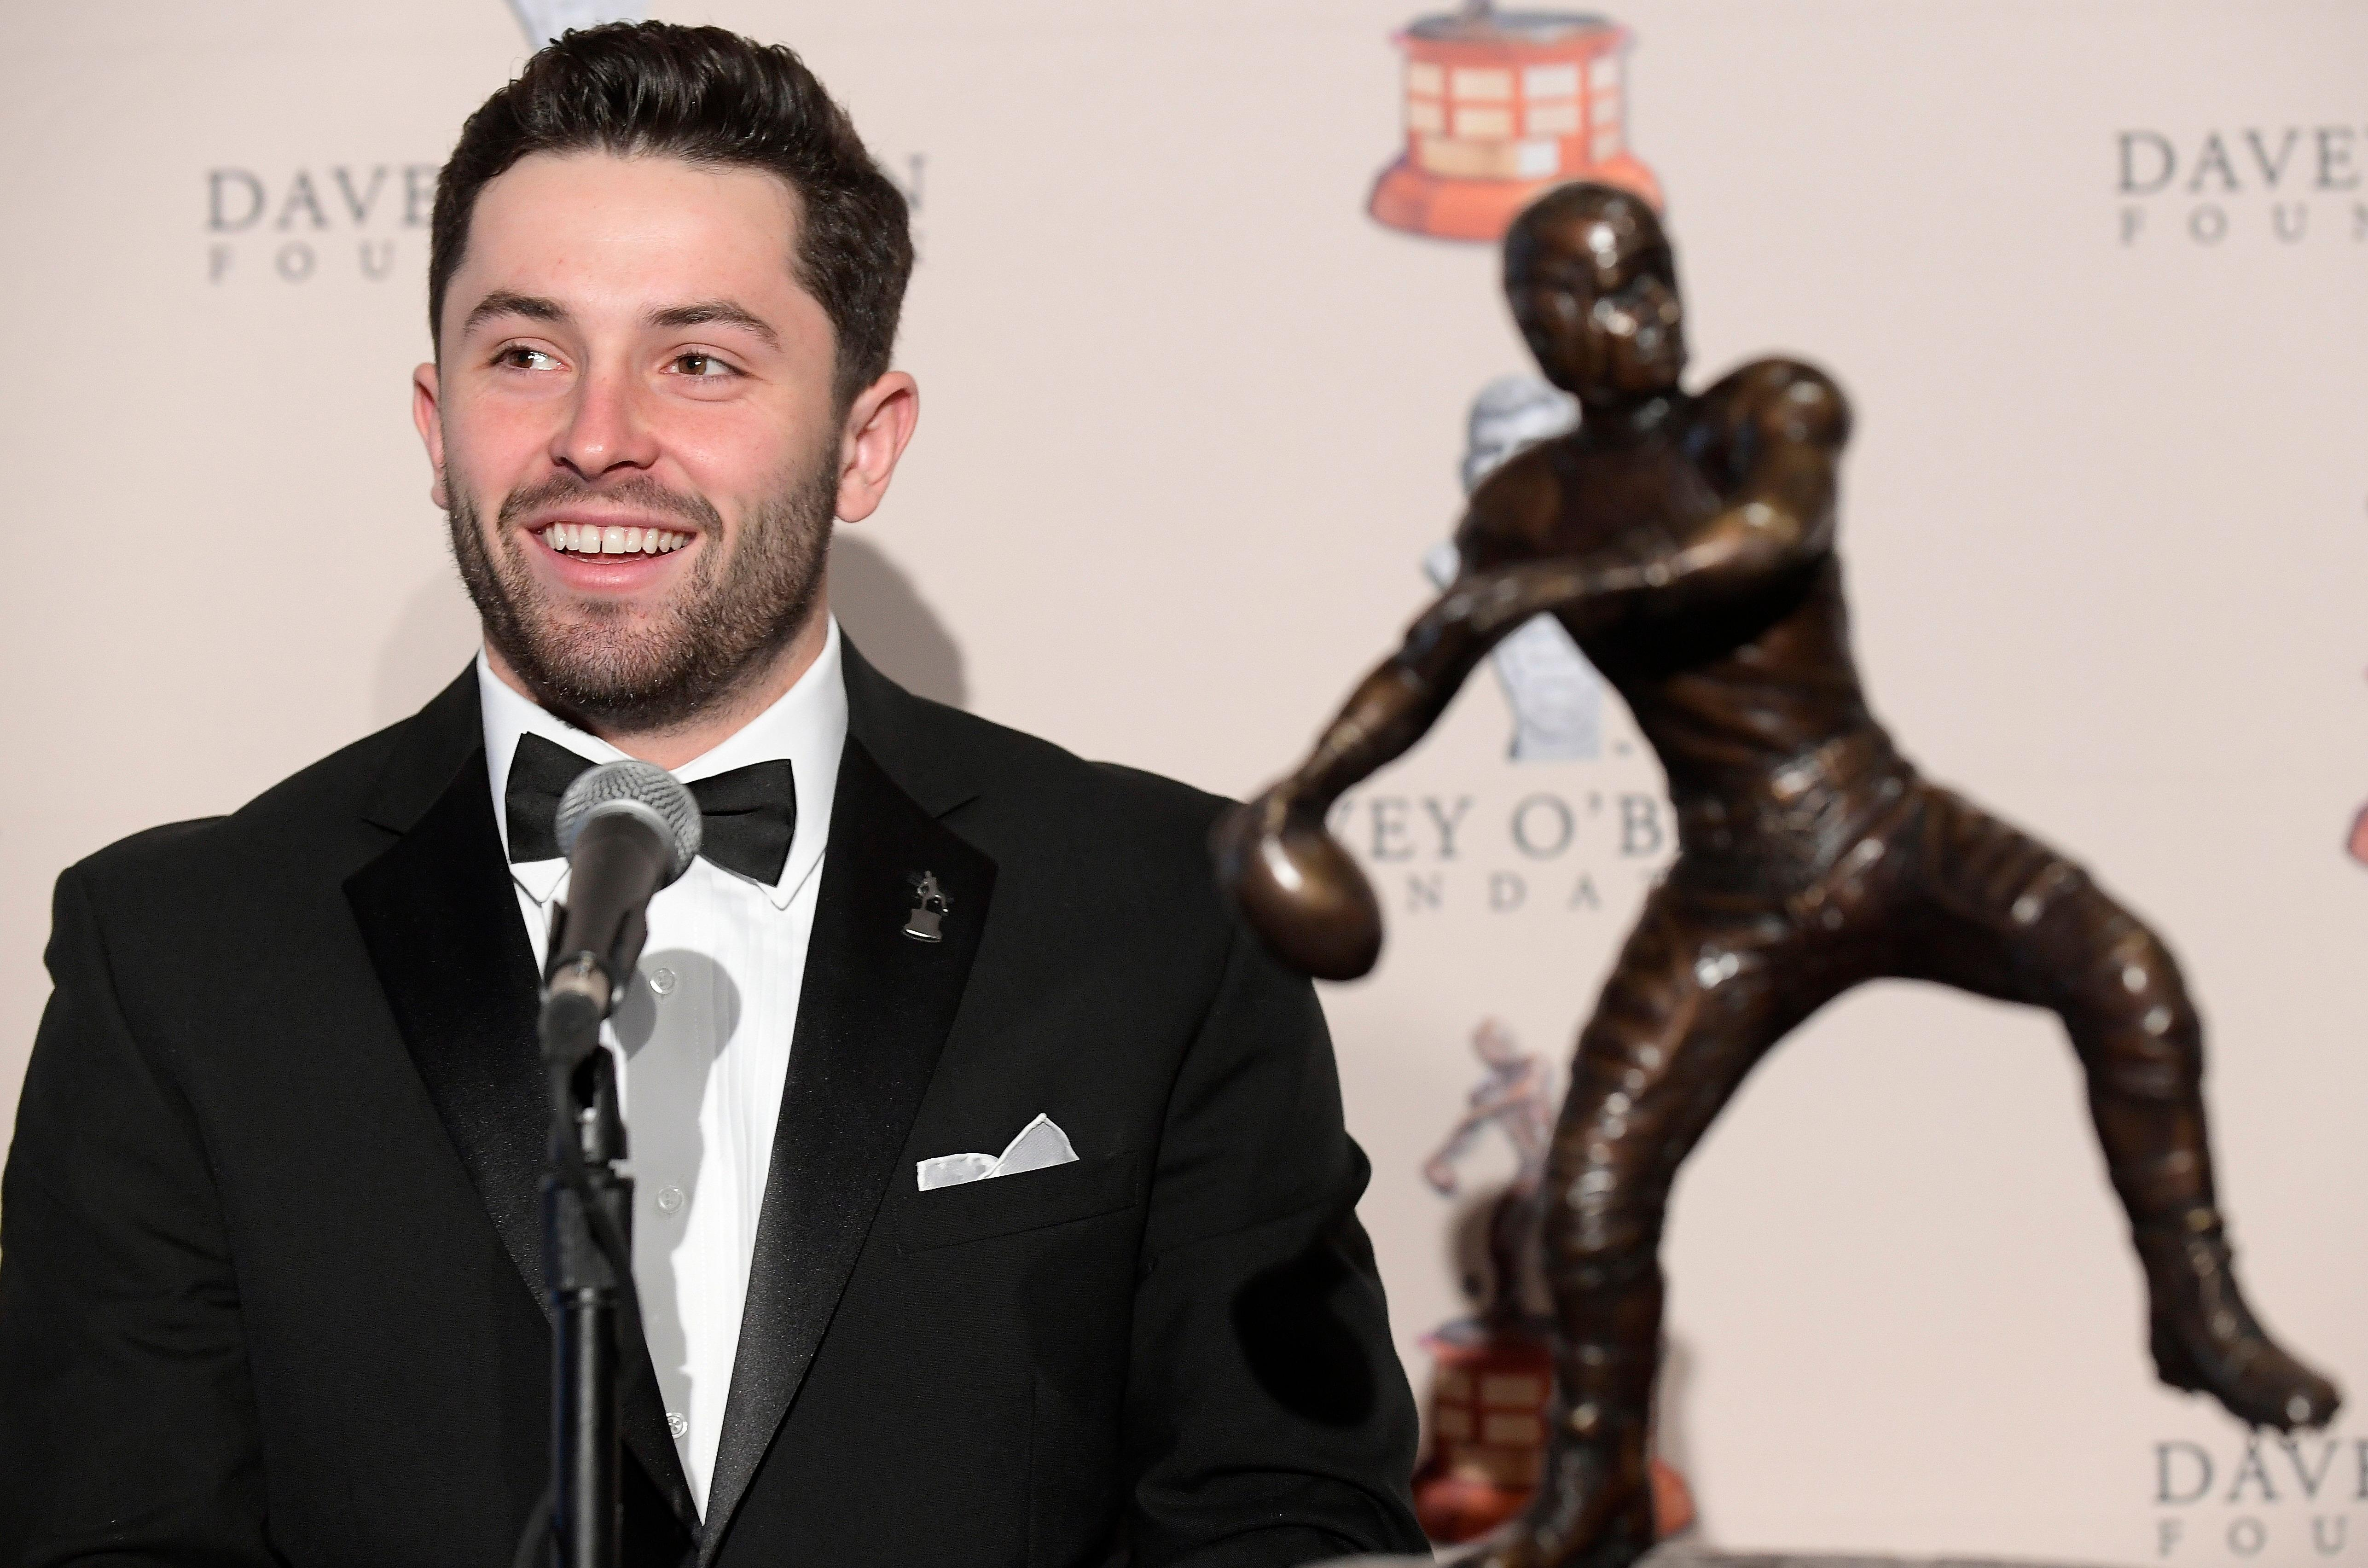 The Davey O'Brien National Quarterback Award winner Baker Mayfield attends a news conference at the Fort Worth Club in Fort Worth, Texas, Monday, Feb. 19, 2018. (Max Faulkner/Star-Telegram via AP)